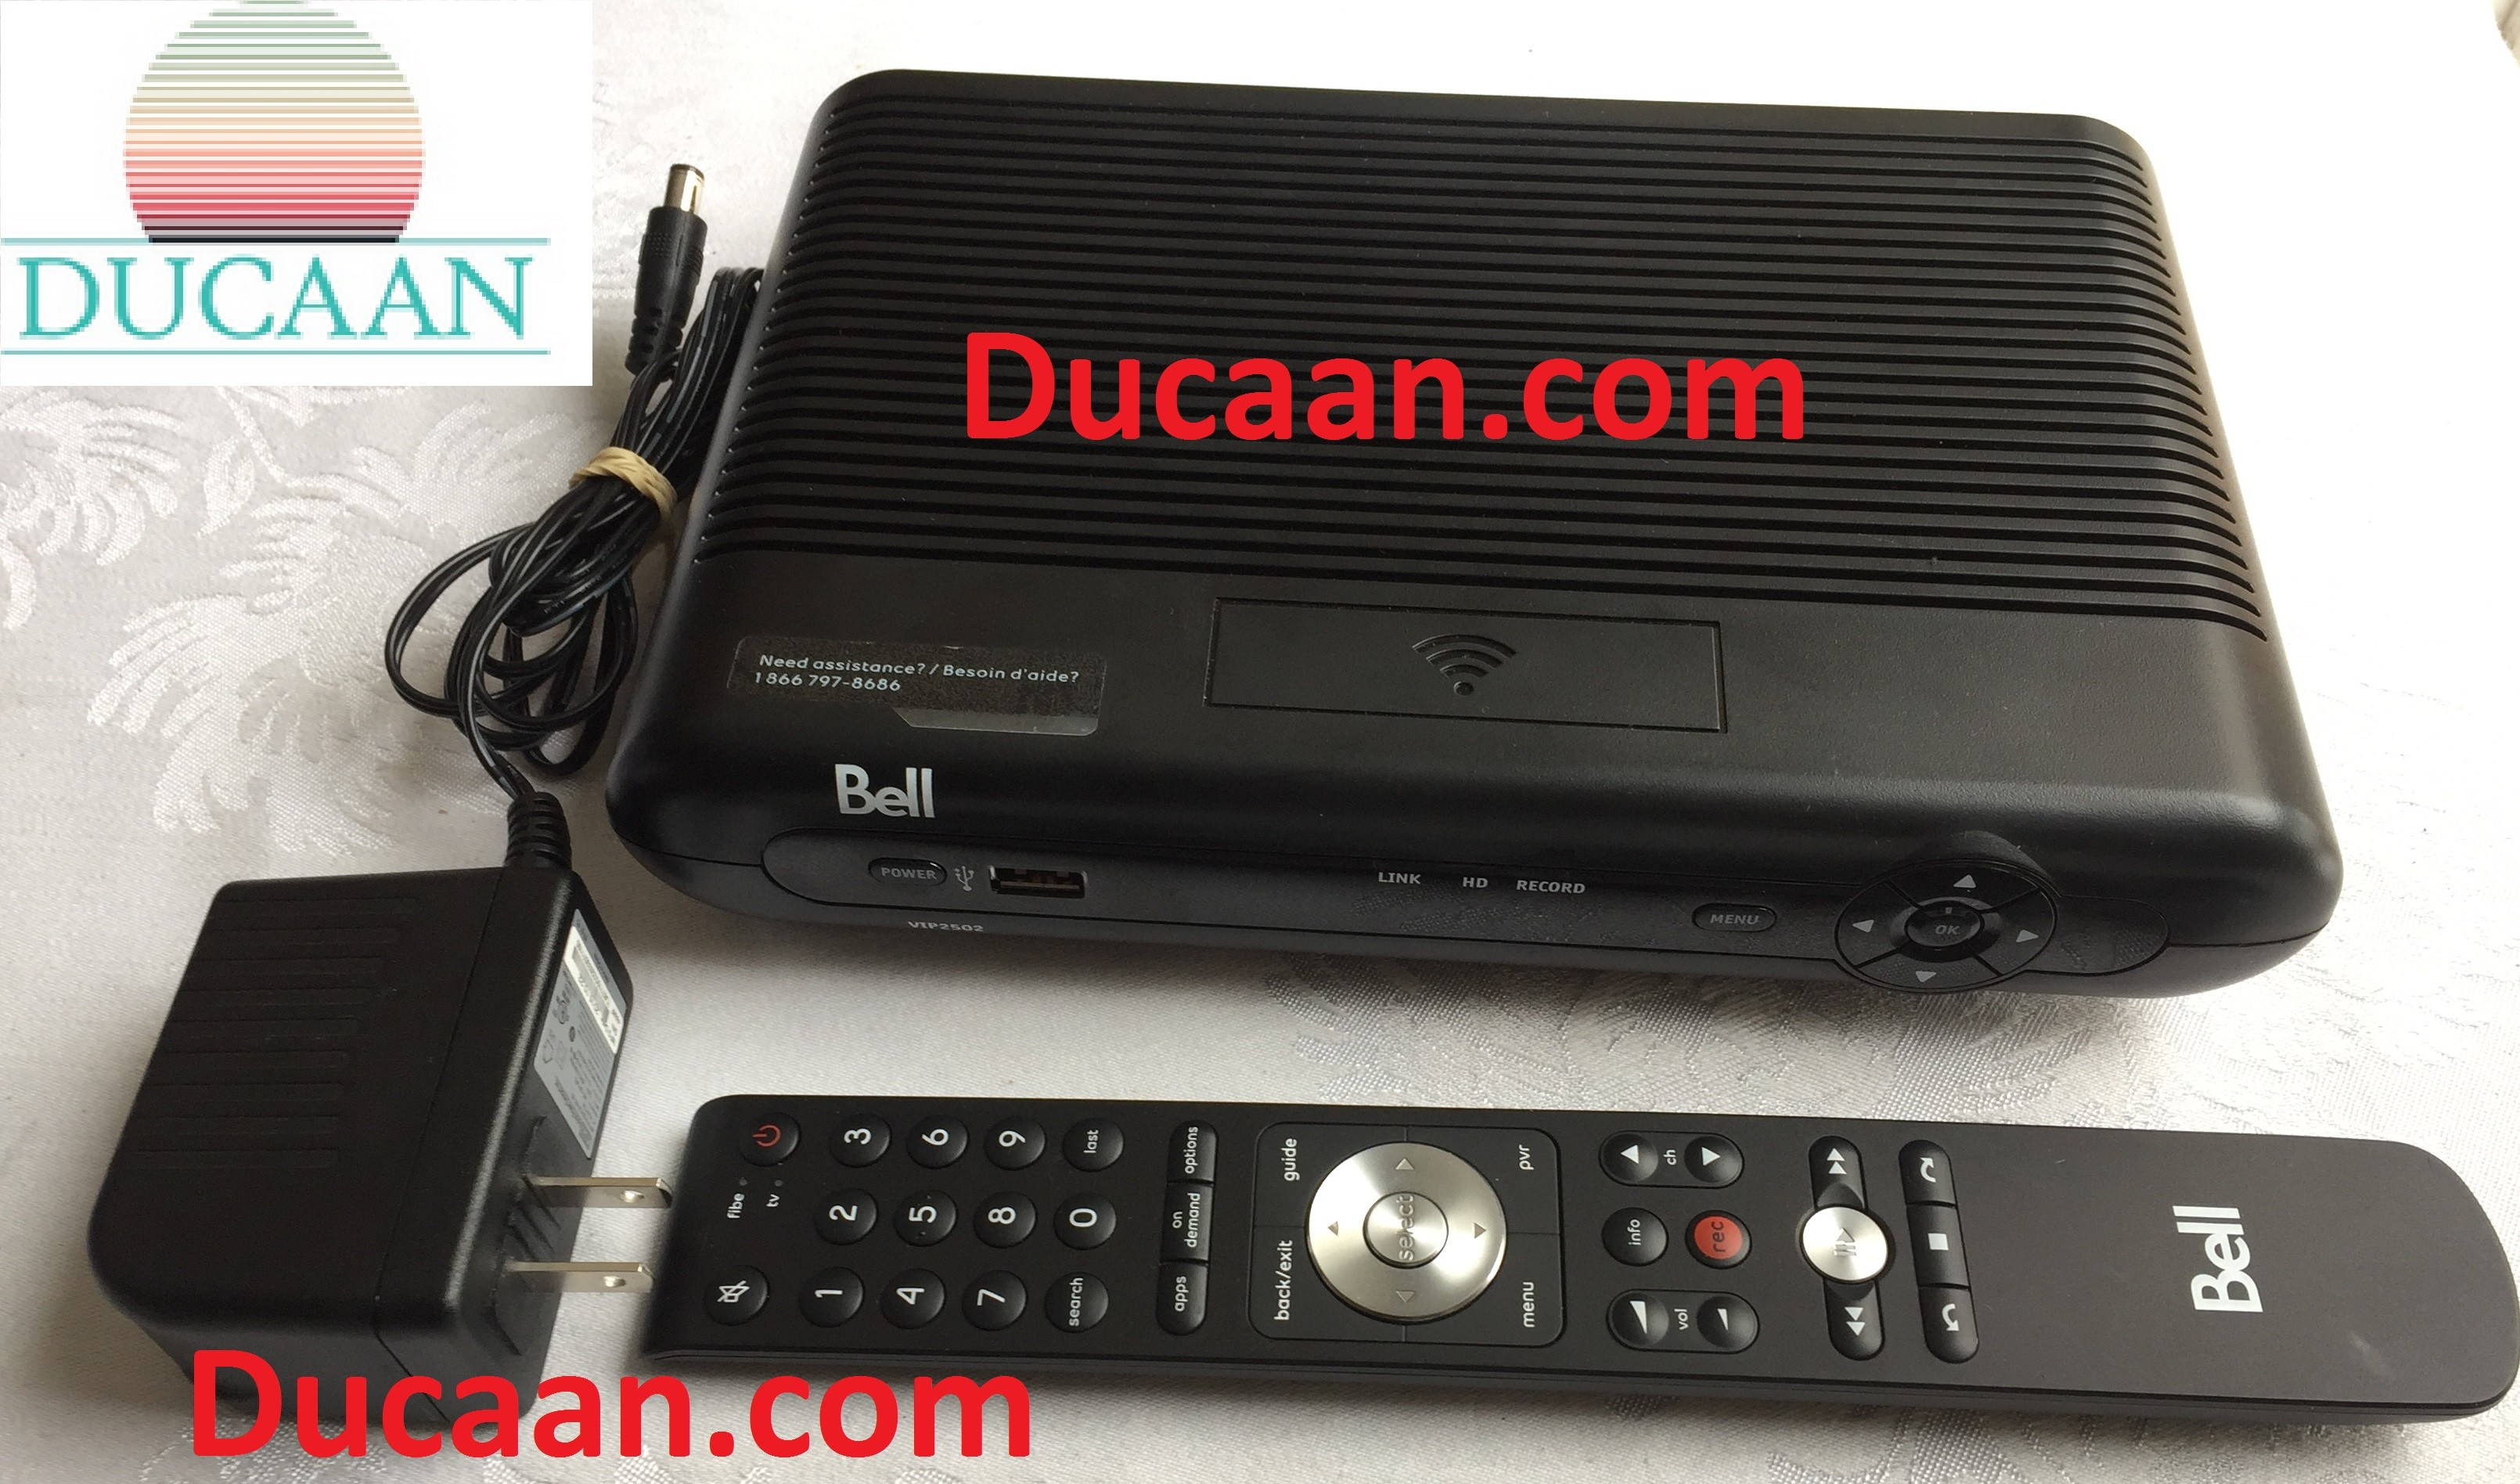 Bell Fibe Wiring Diagram And Schematics Iptv Ideas Electrical Circuit Tv Vip2502 Wireless Receiver For Ducaan